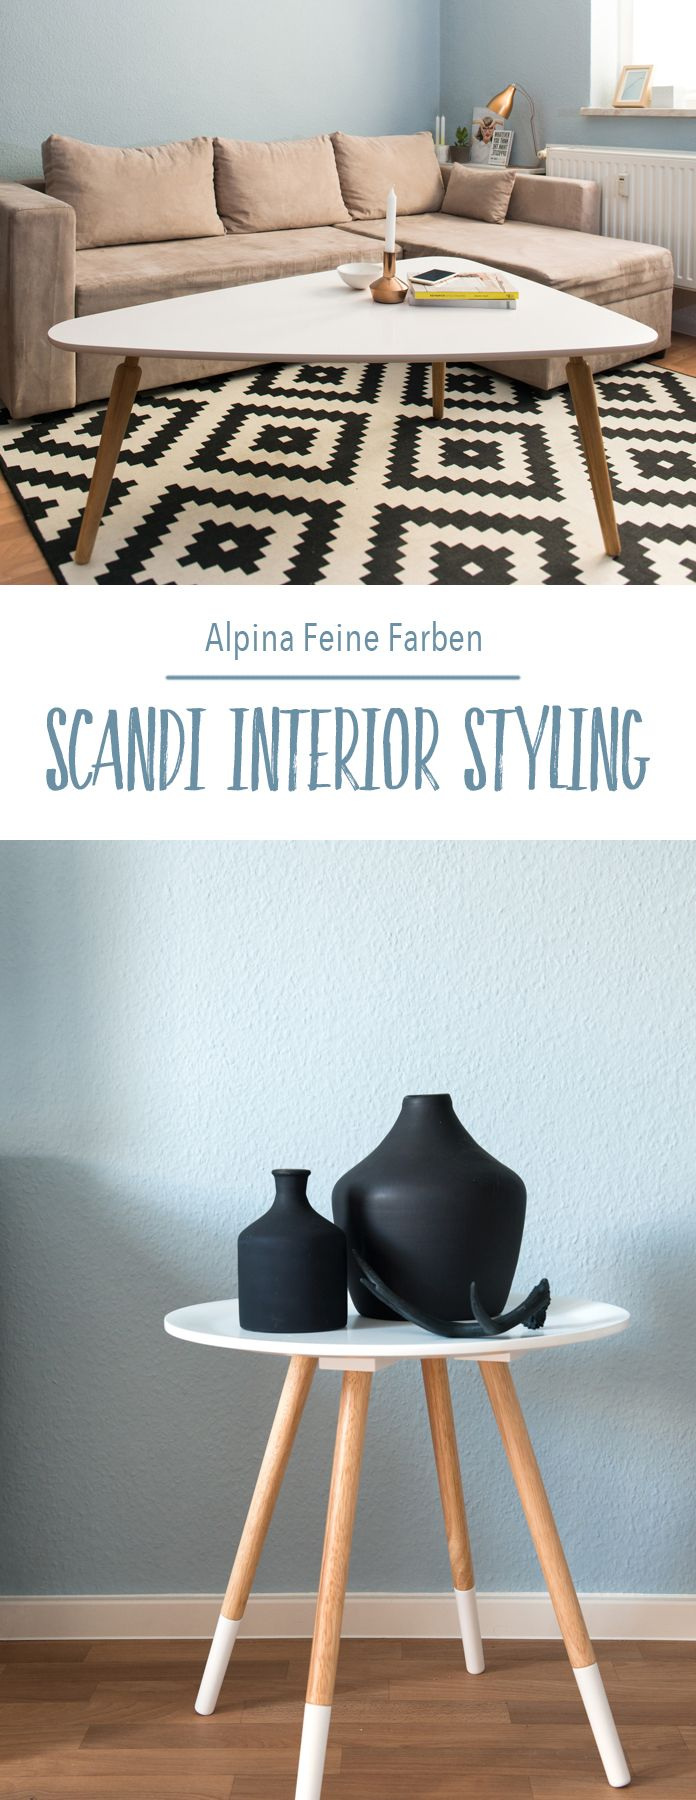 scandi interior styling mit alpina teil 2 alabaster blogzine. Black Bedroom Furniture Sets. Home Design Ideas